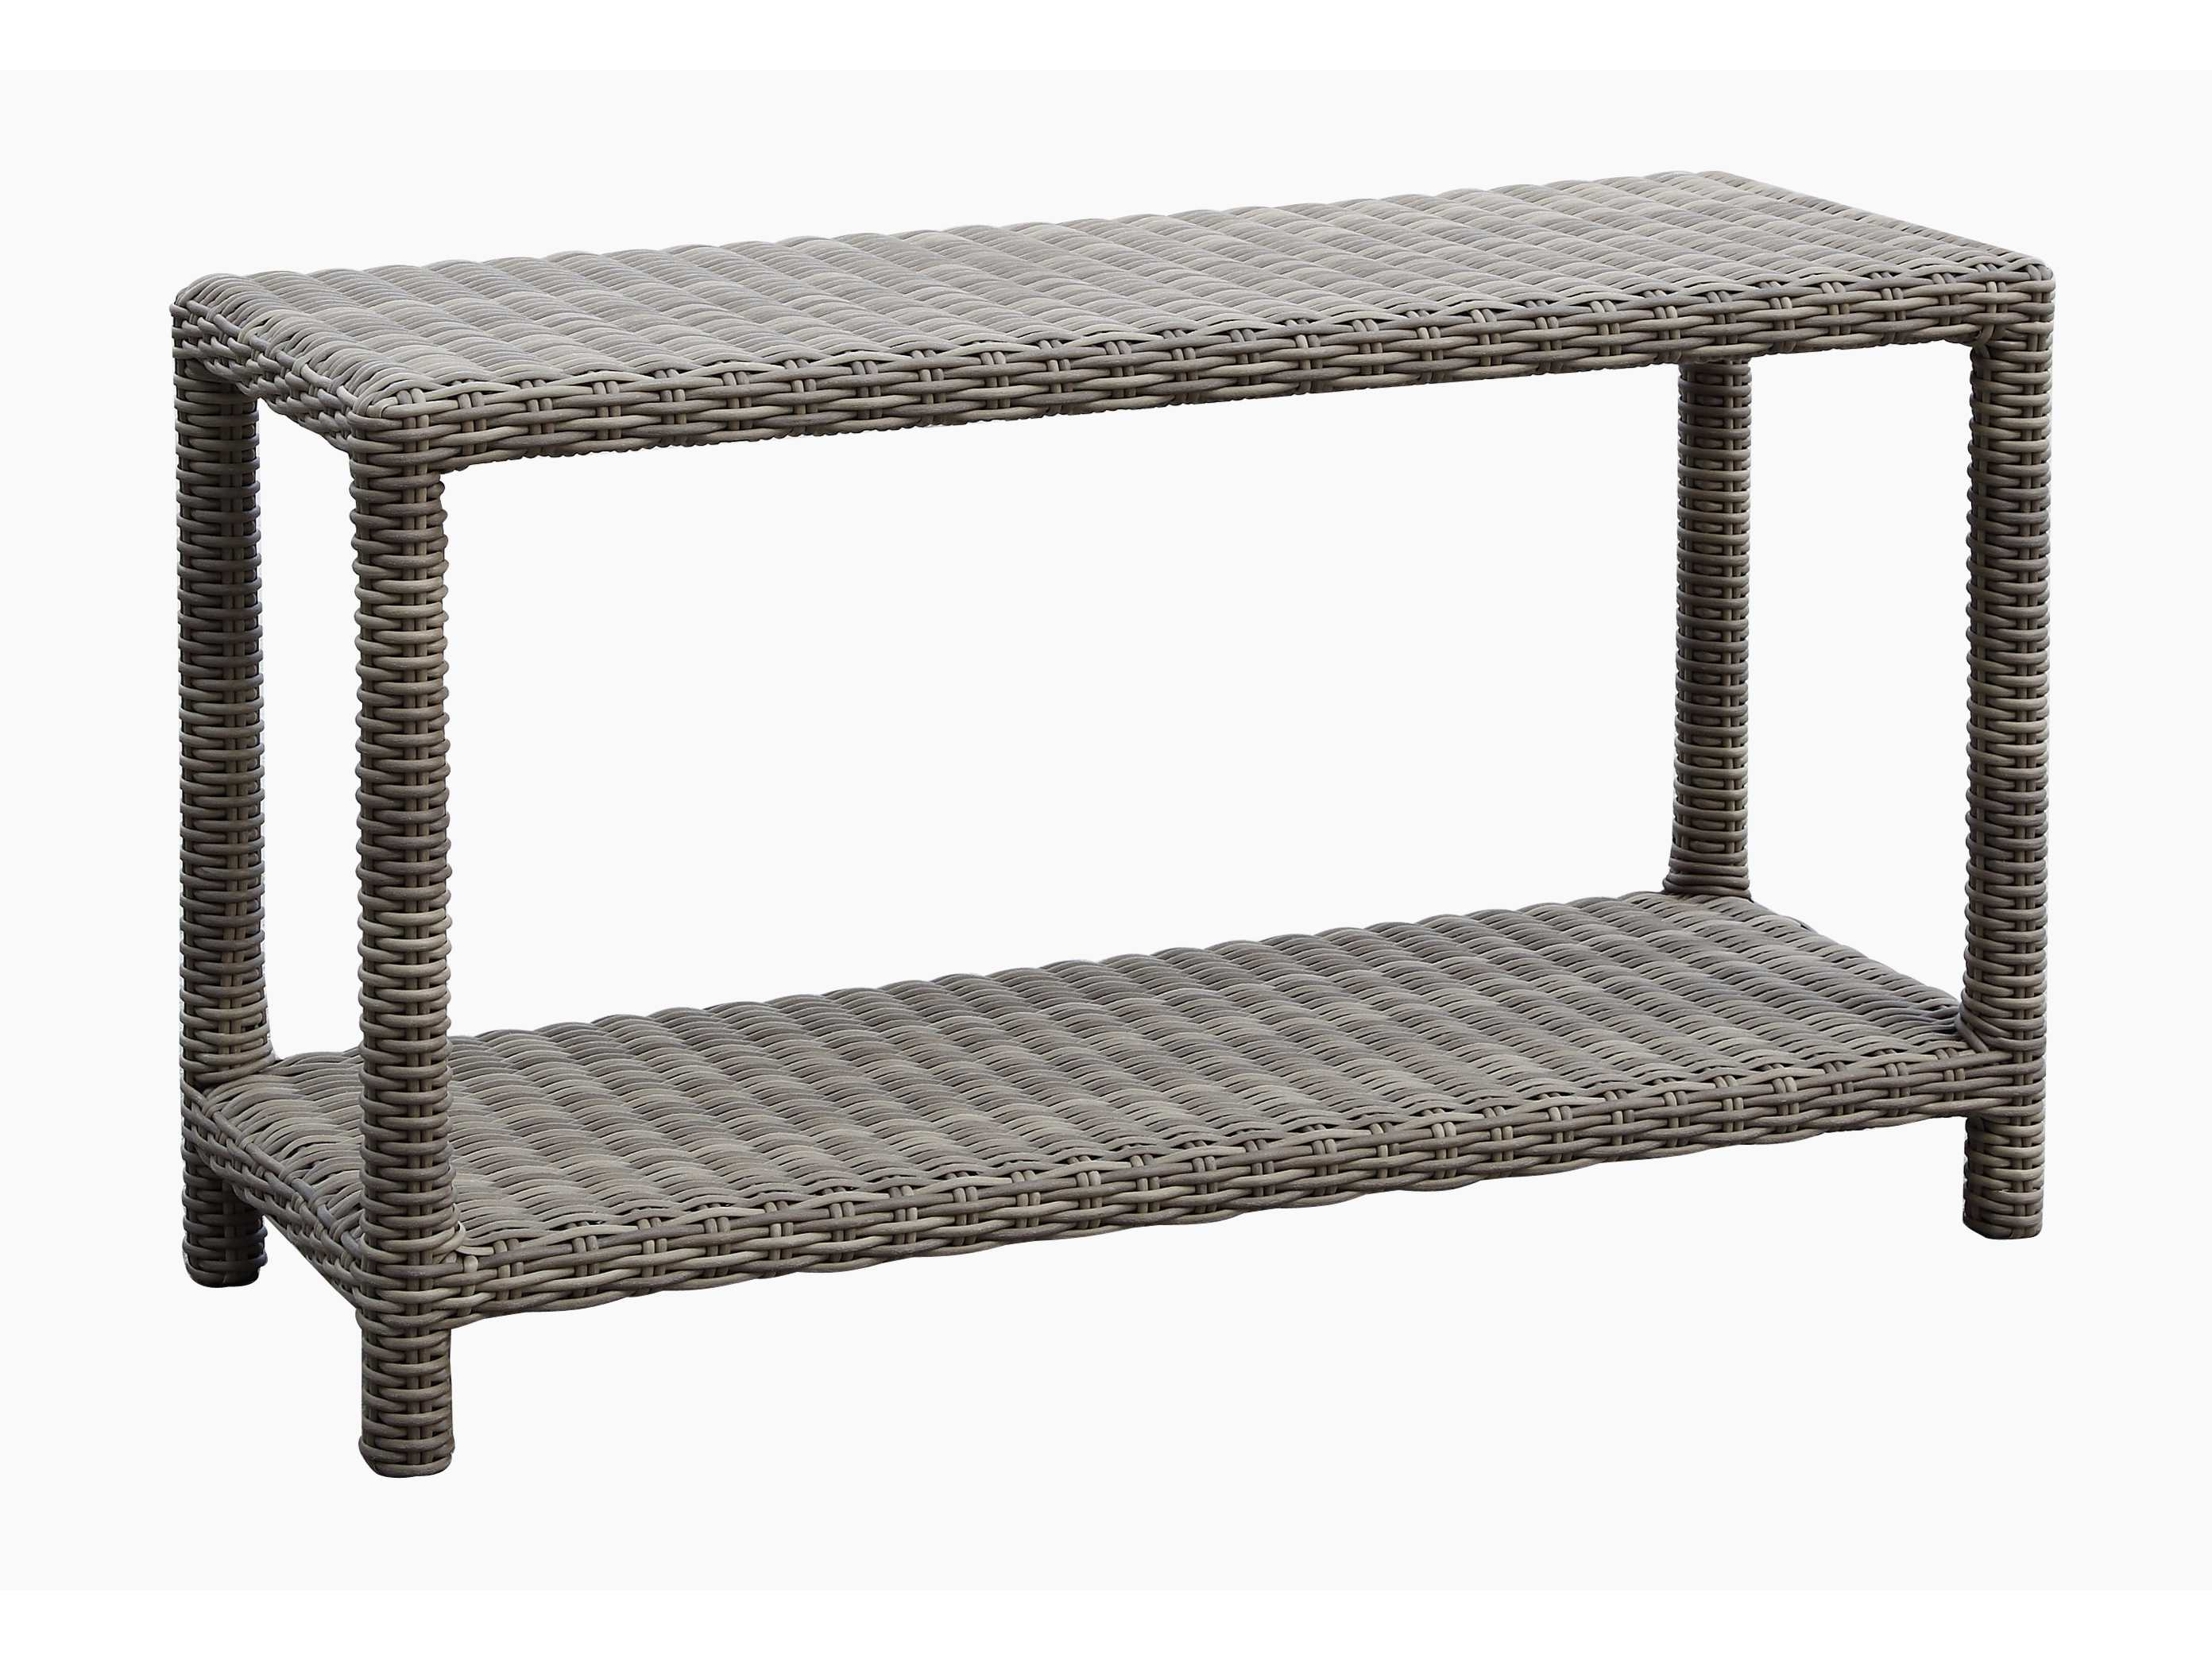 Sunset West Quick Ship Coronado Wicker 51 X 18 Rectangular Sofa Table SW2101ST